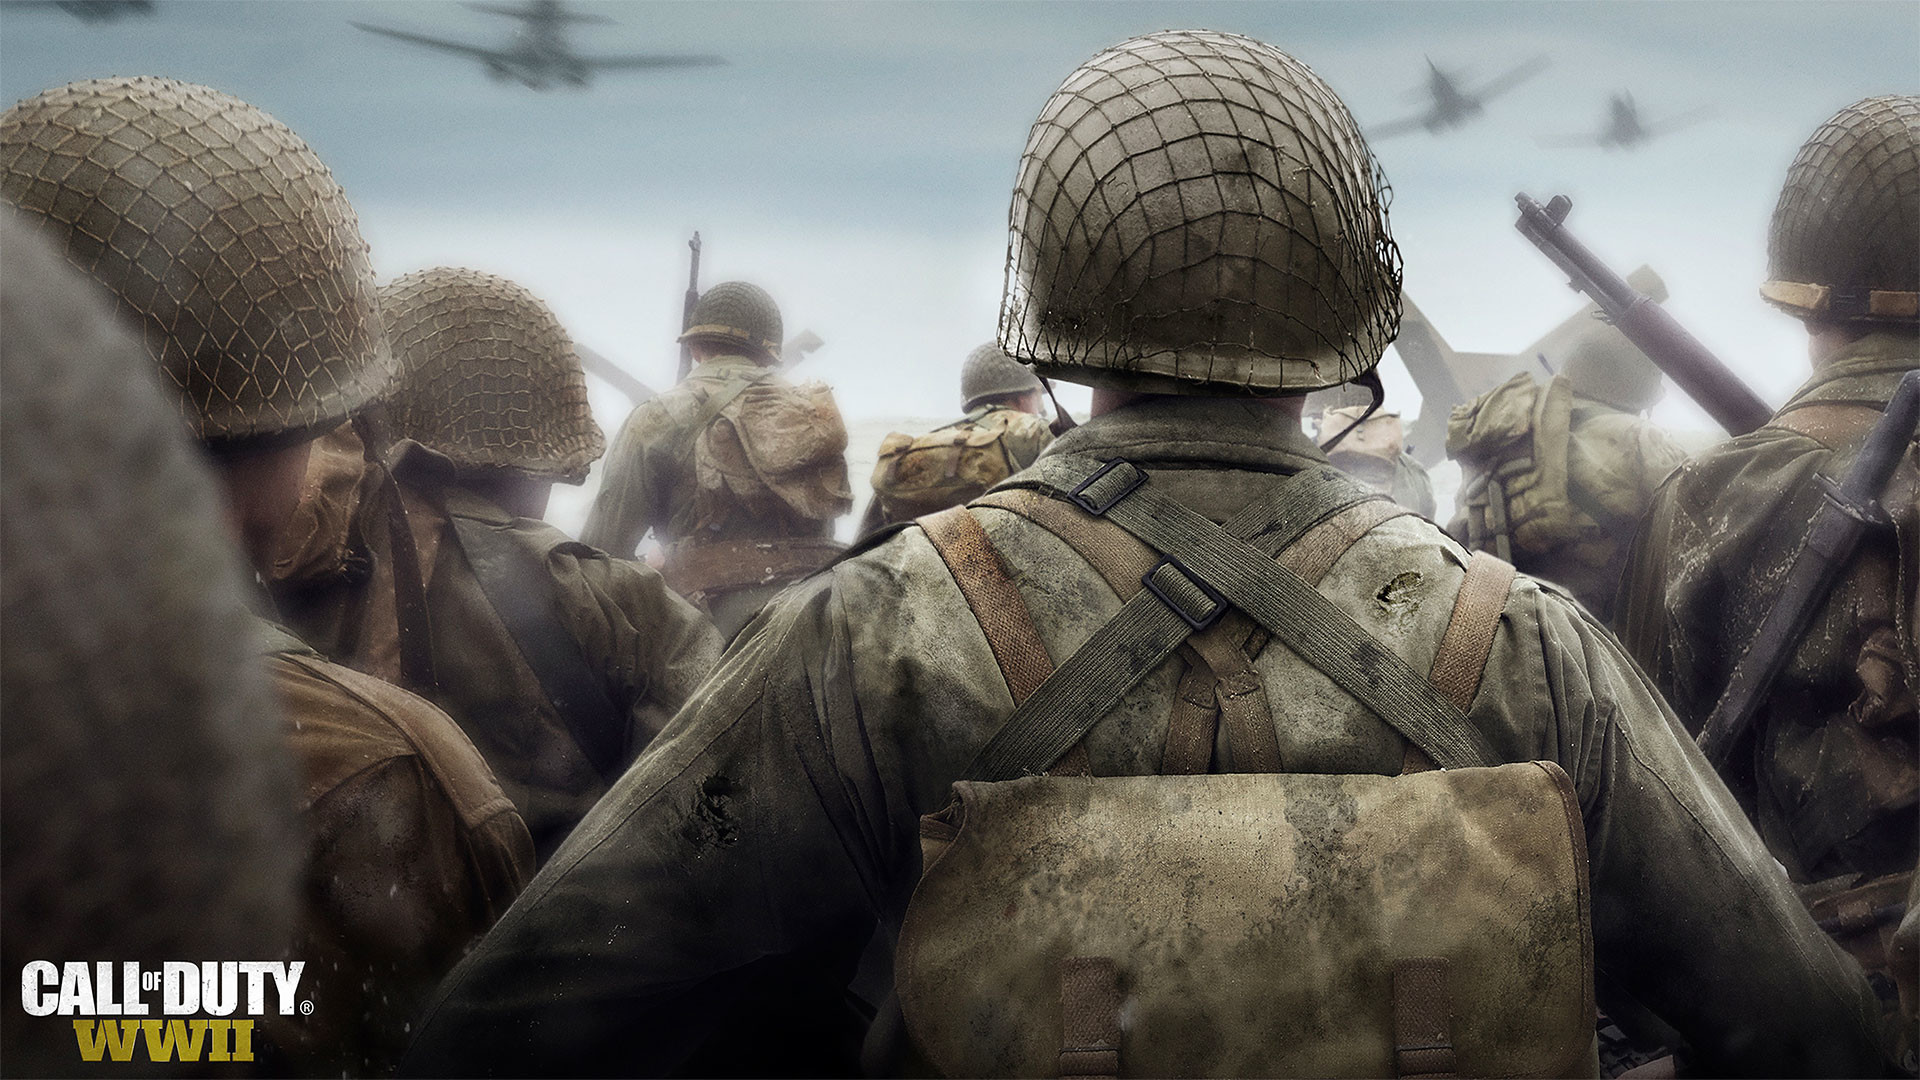 1920x1080 ... OF DUTY WWII 1080p Wallpaper ...